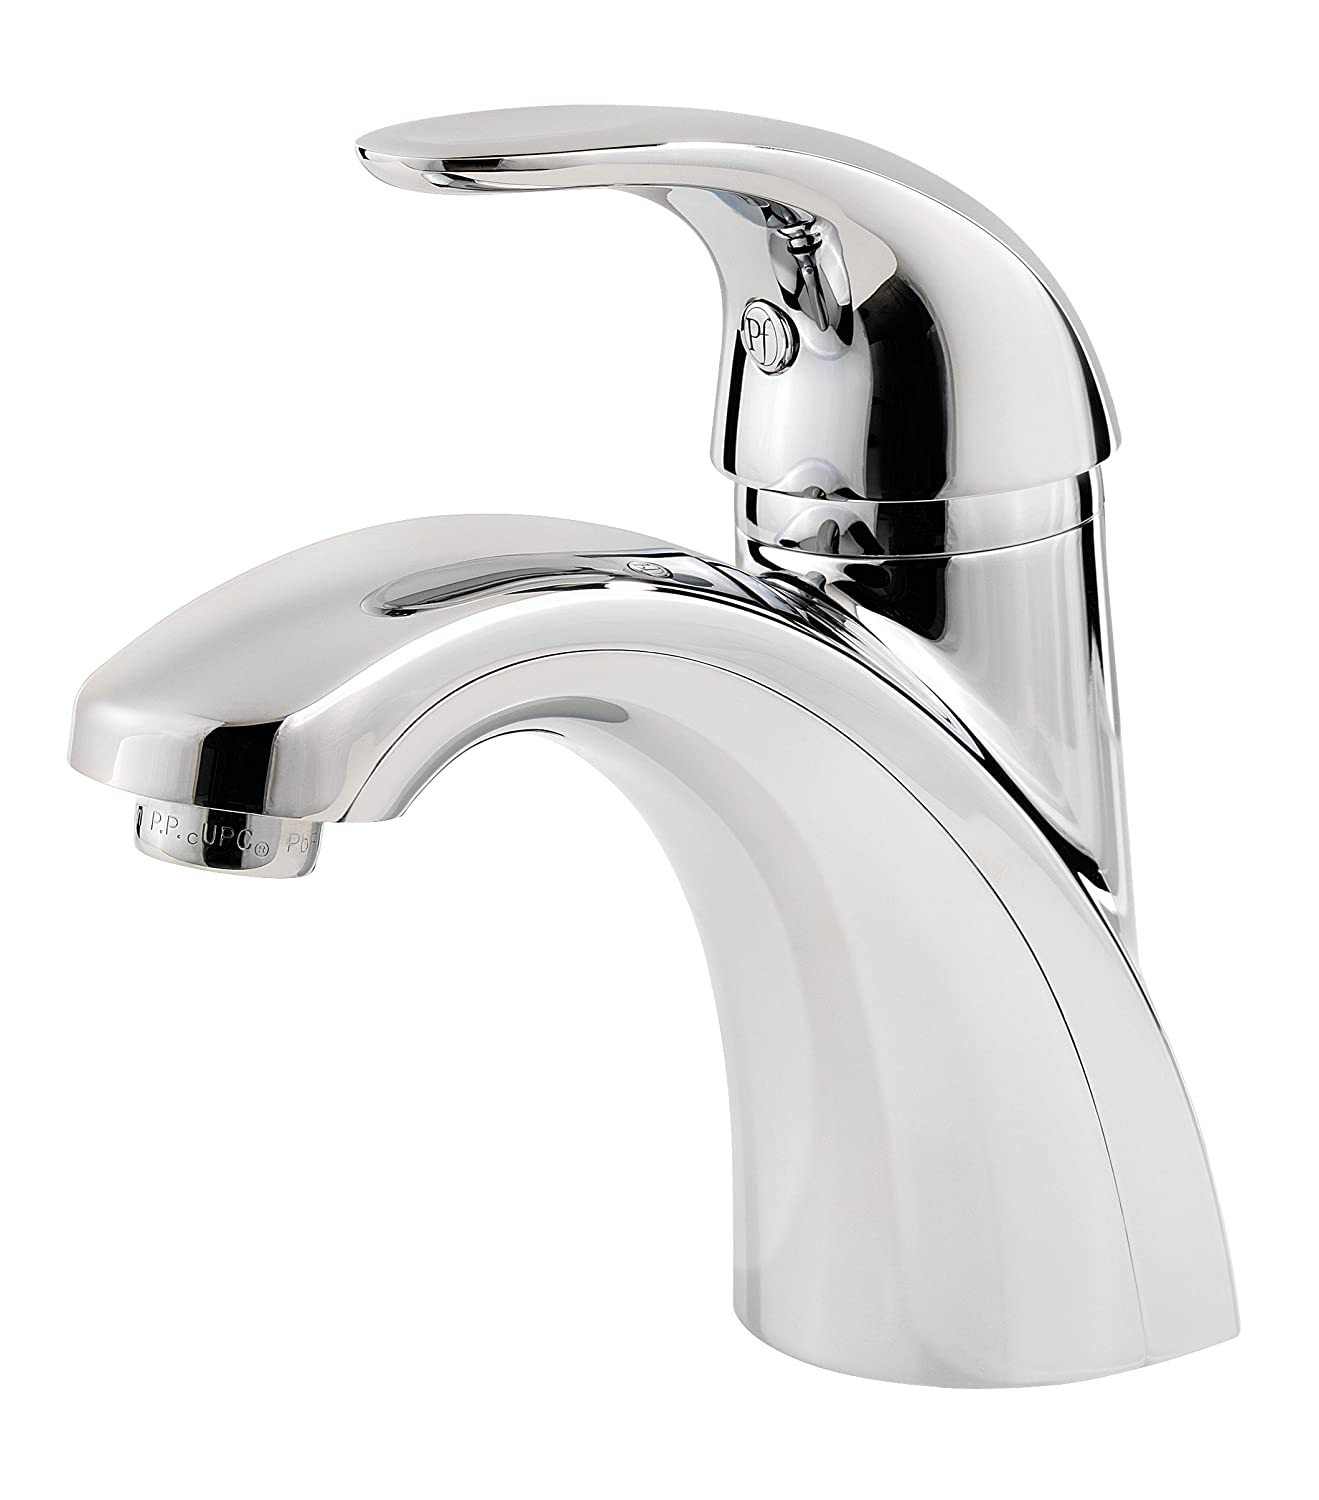 Low Cost Pfister Parisa Single Control 4 Centerset Bathroom Faucet Polished Chrome